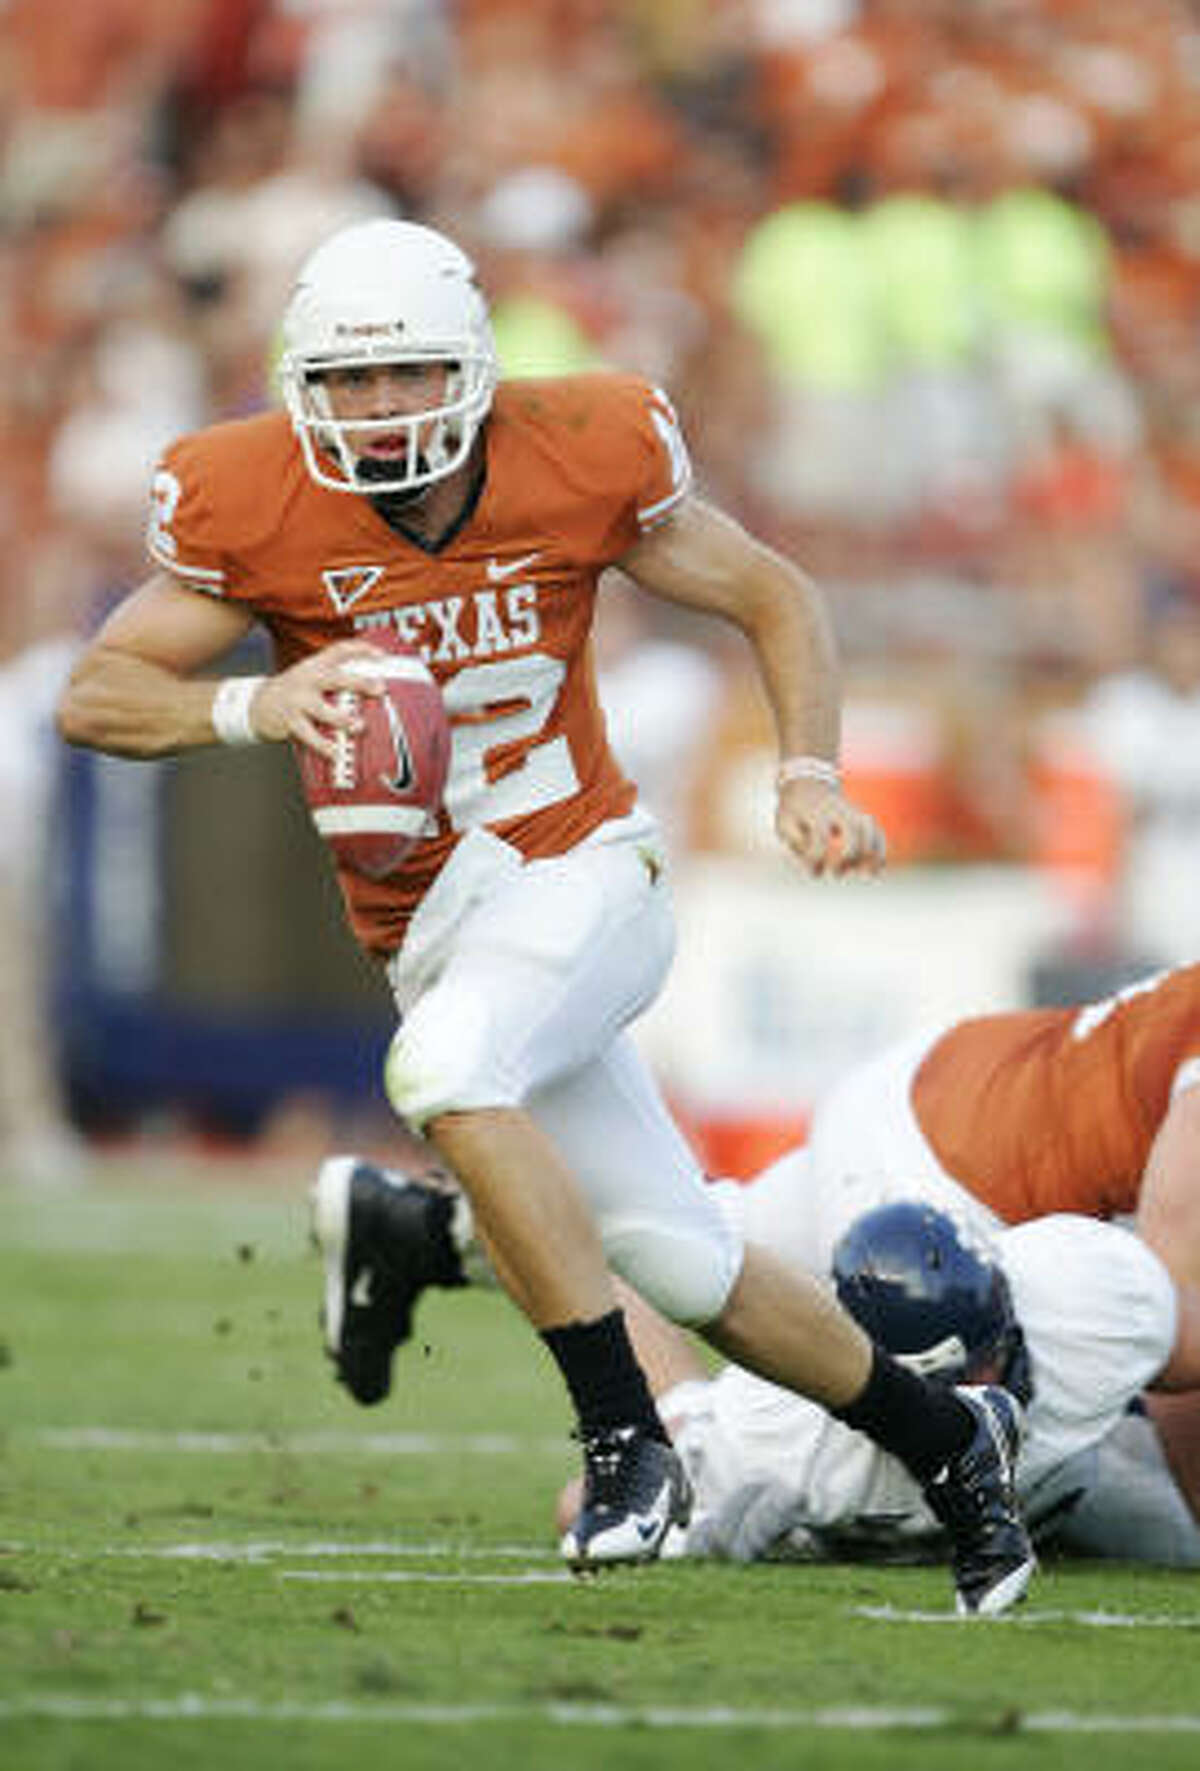 Under pressure, quarterback Texas quarterback Colt McCoy breaks out of the pocket to run for a touchdown against the Rice Owls in the first quarter on Saturday at Darrell K Royal-Texas Memorial Stadium in Austin.